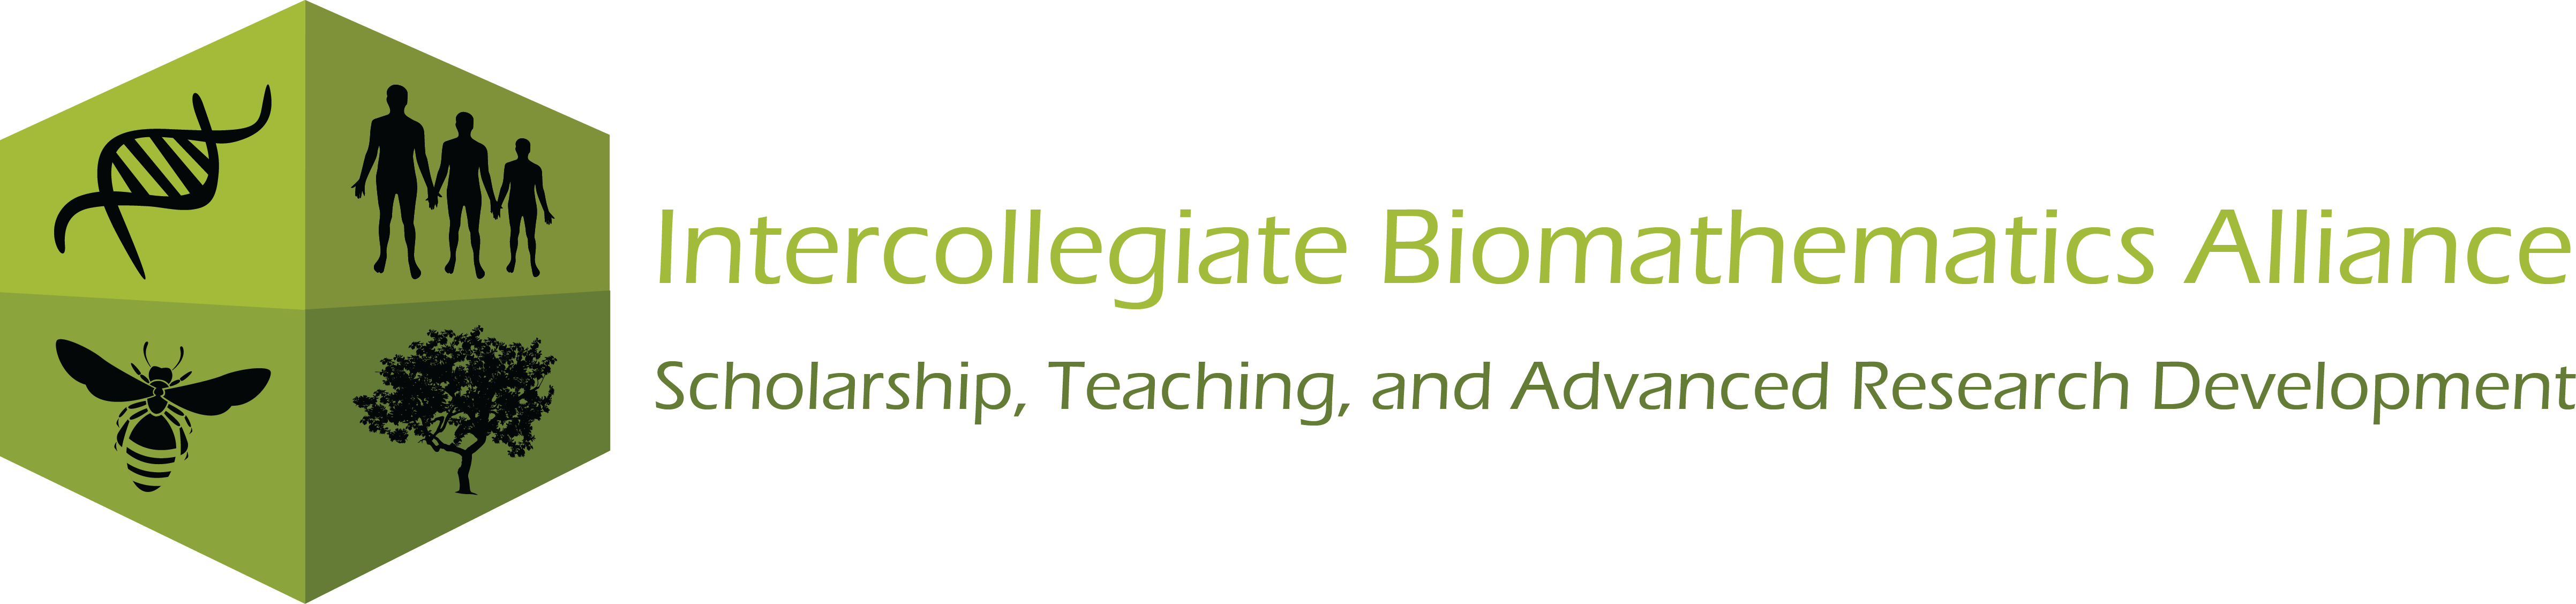 Intercollegiate Biomathematics Alliance